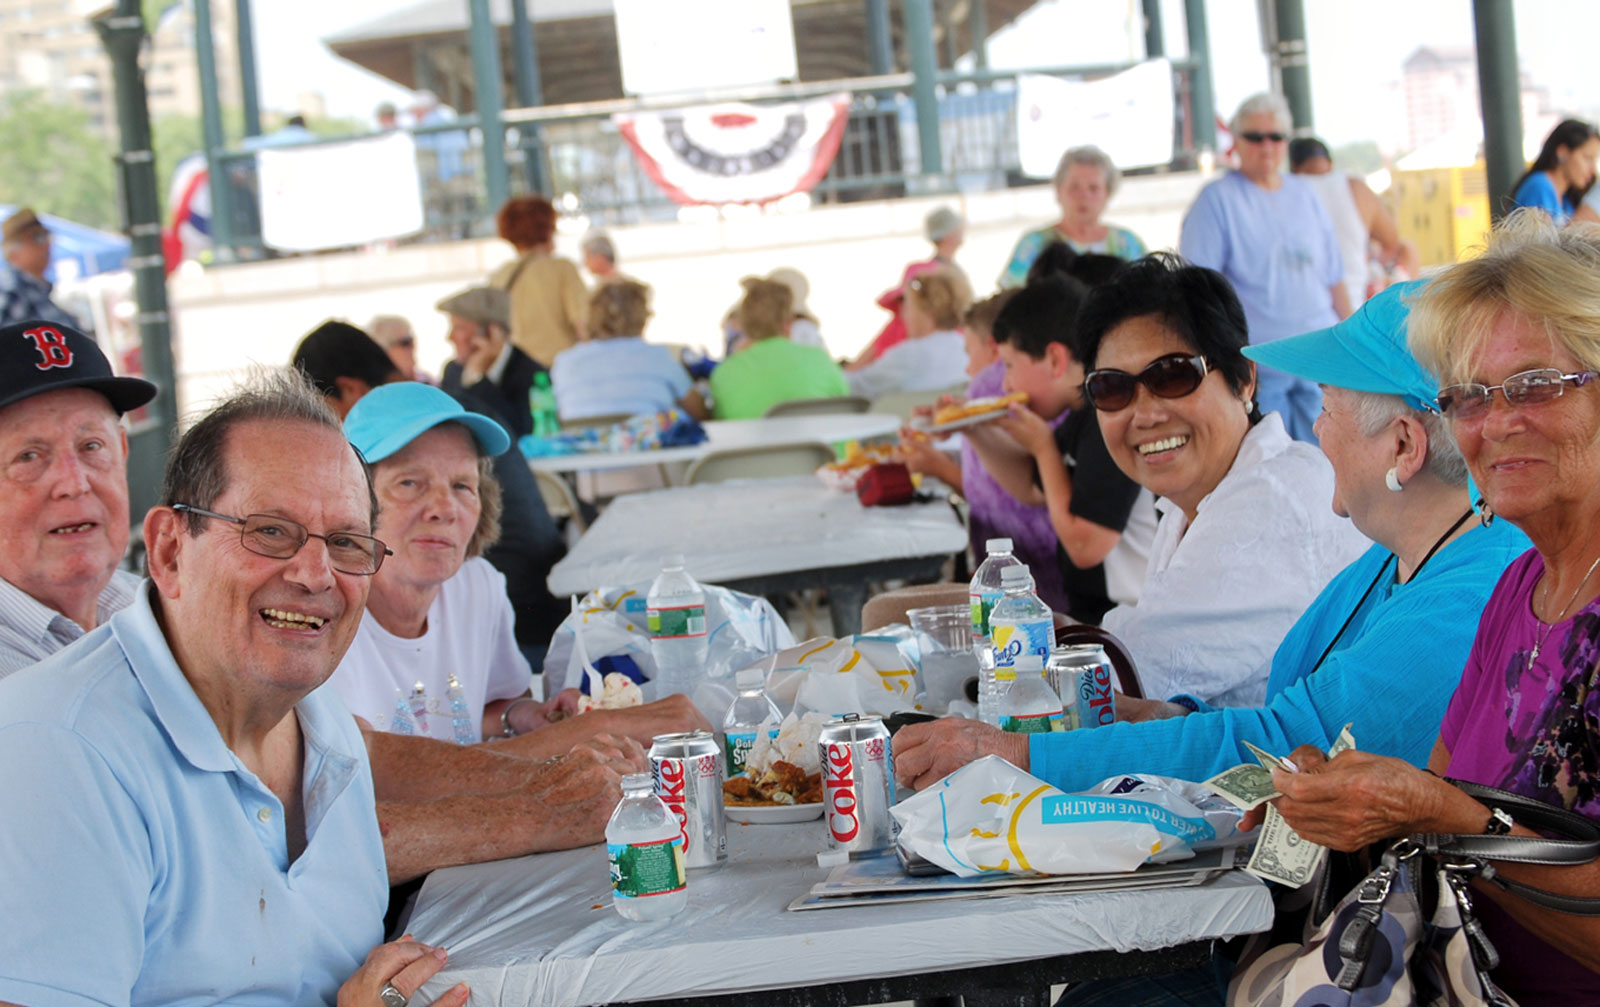 A group of Somerville residents enjoy lunch aboard a Council on Aging boat trip